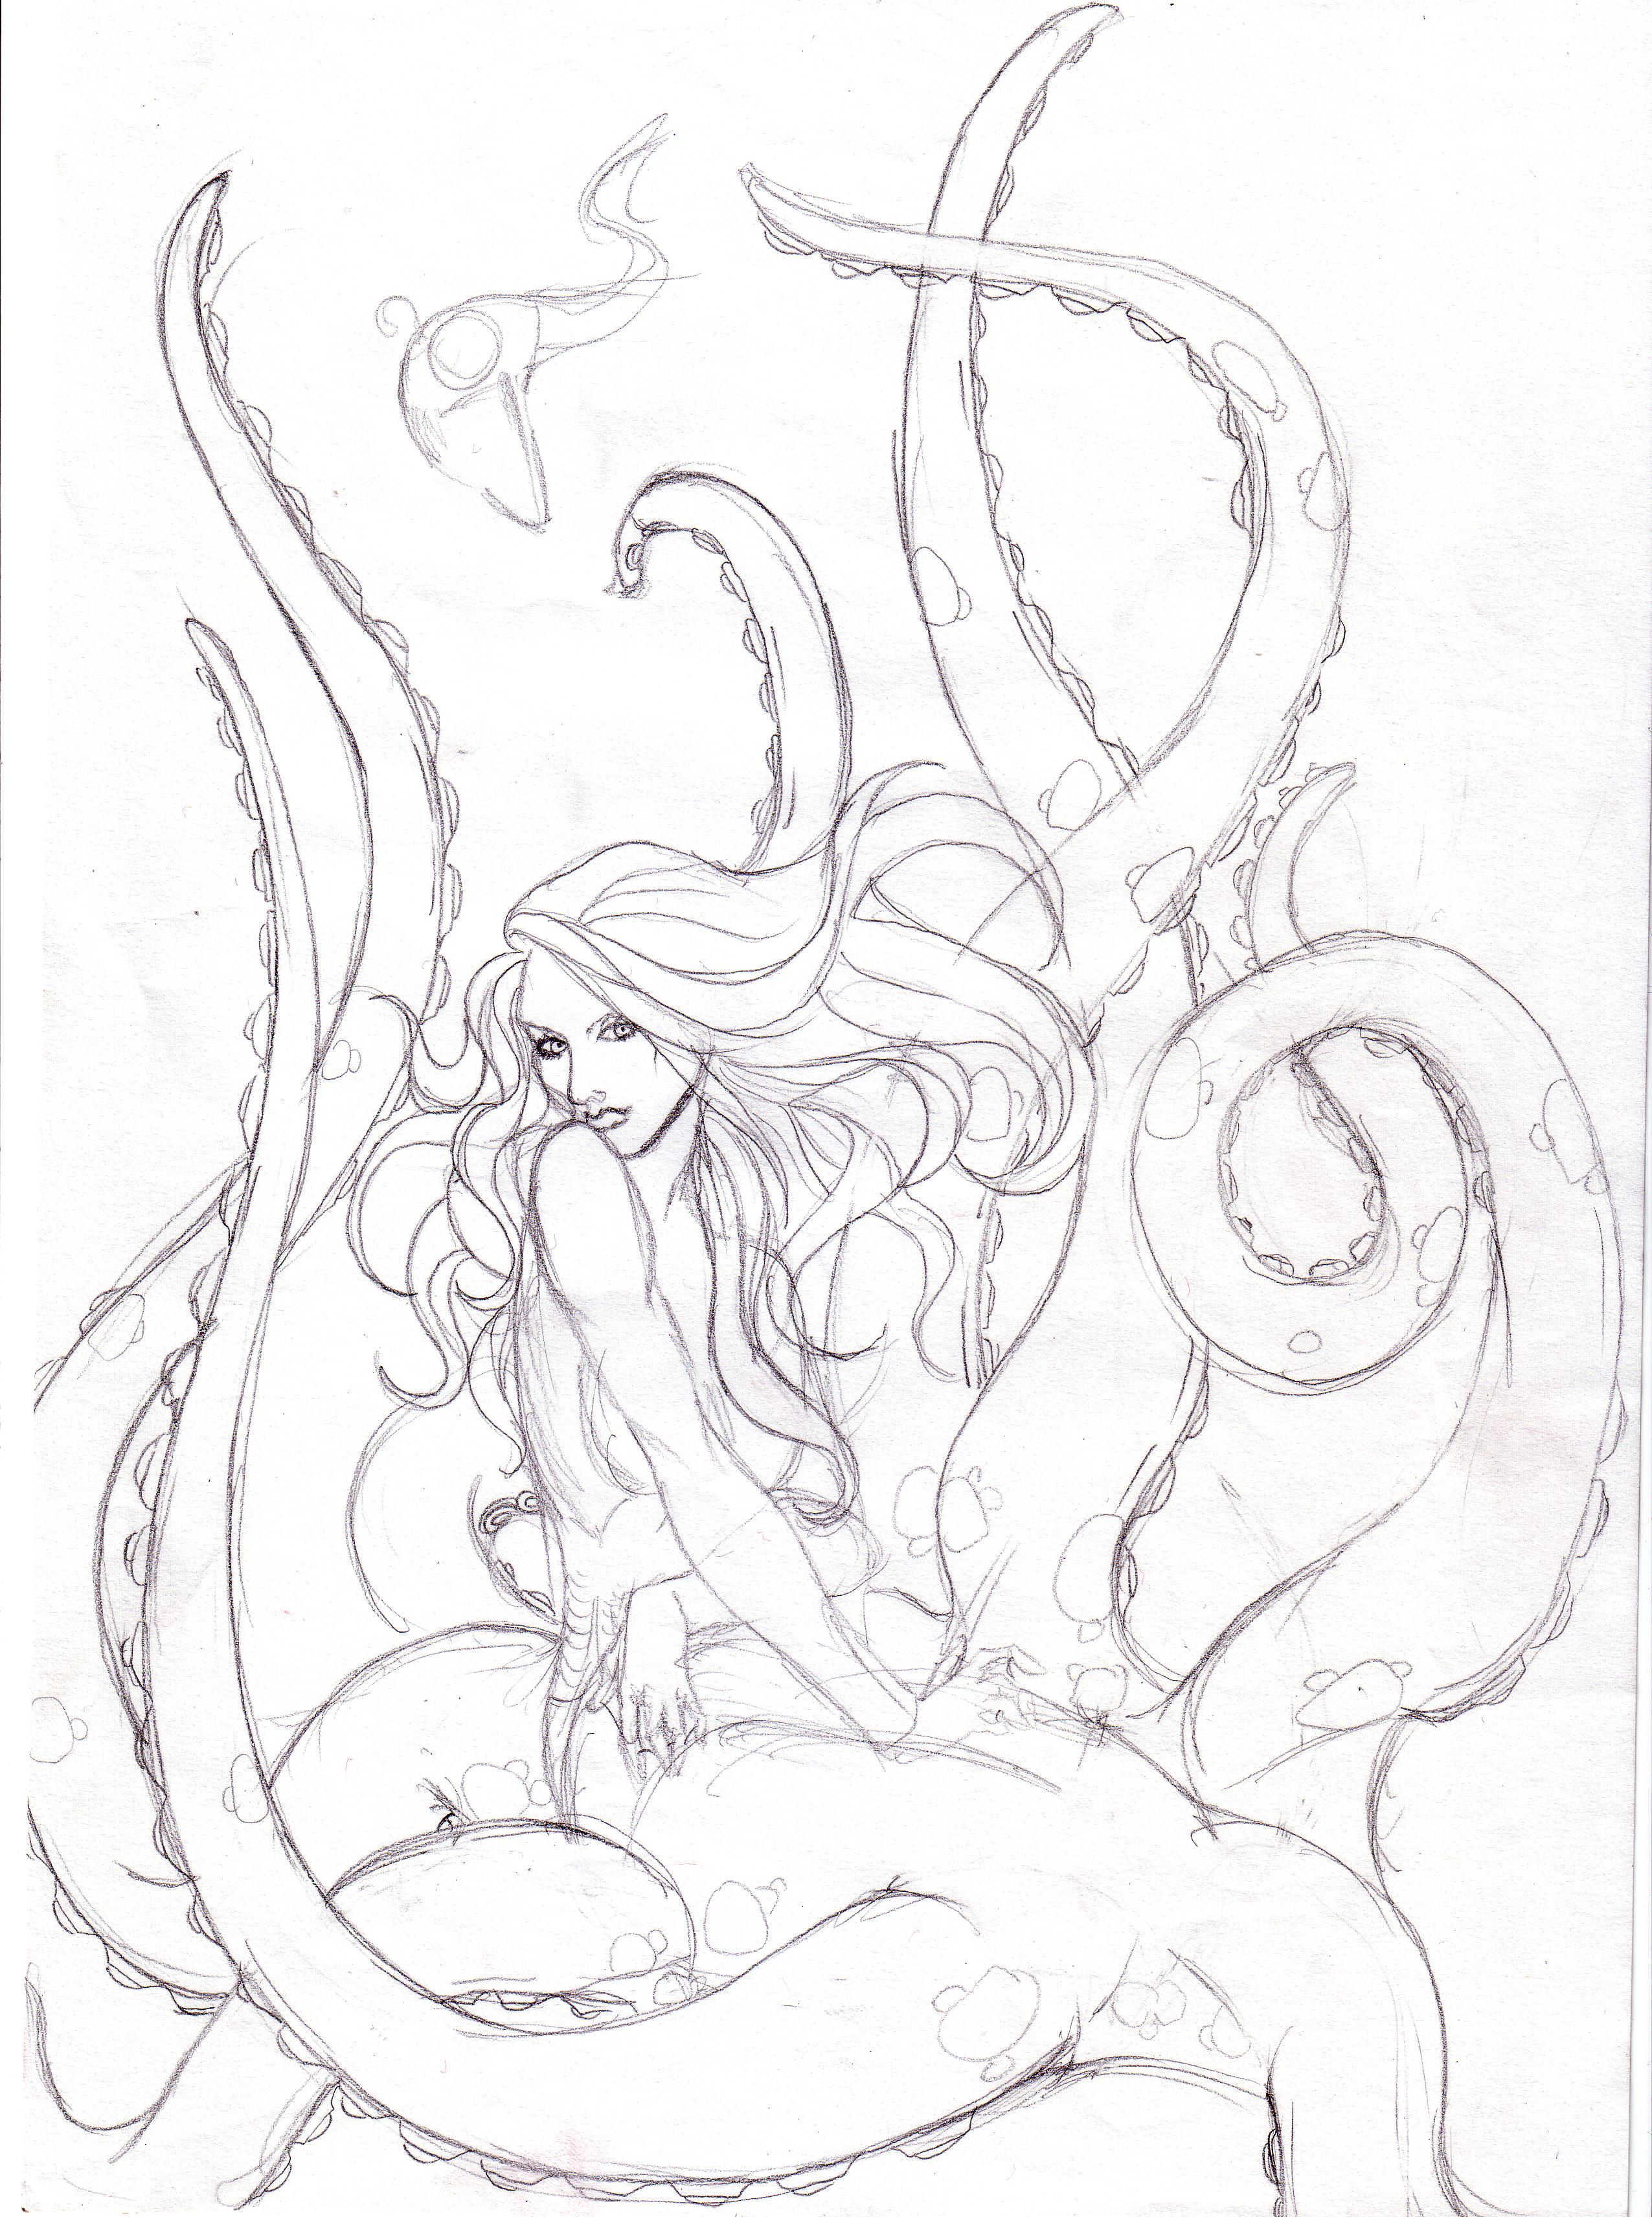 Ursula Drawing at GetDrawings.com | Free for personal use Ursula ...